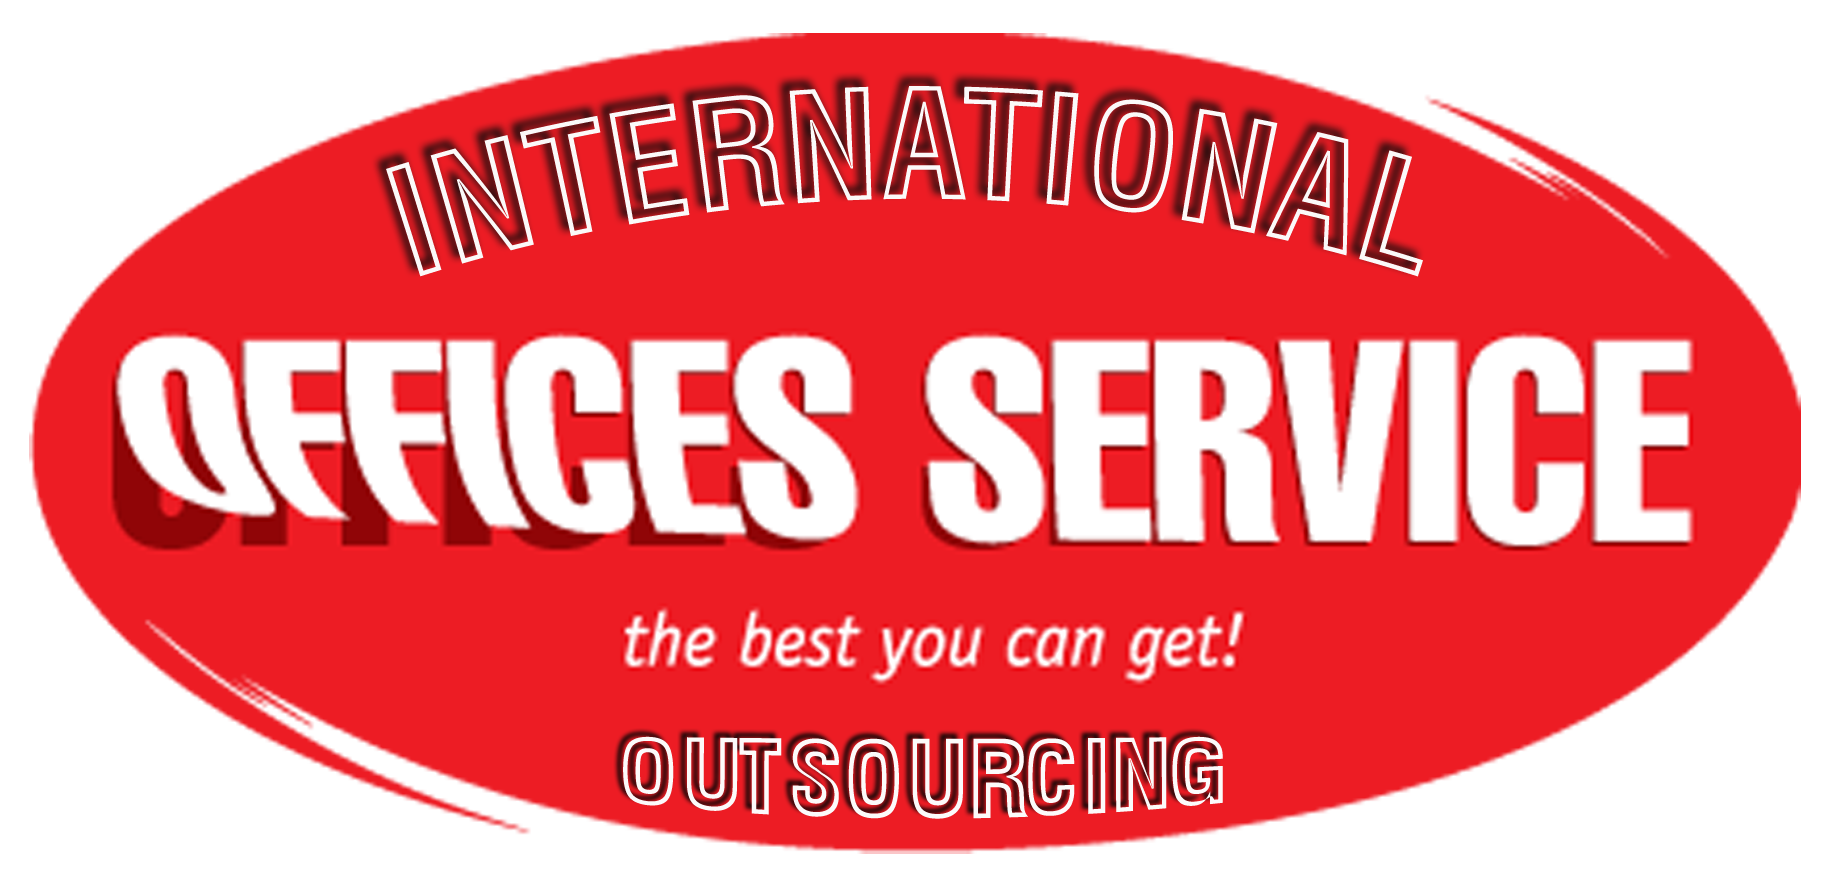 Officesgroup outsourcing